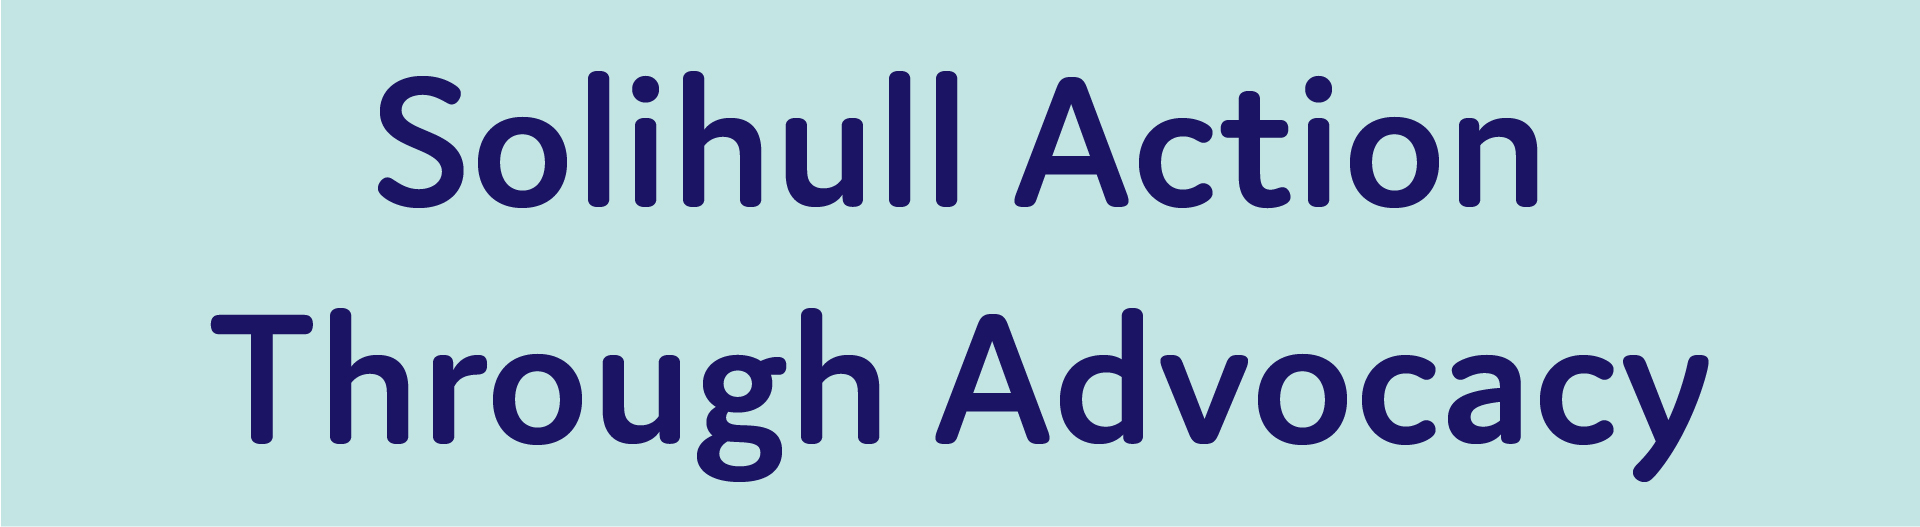 Solihull action through advocacy-01